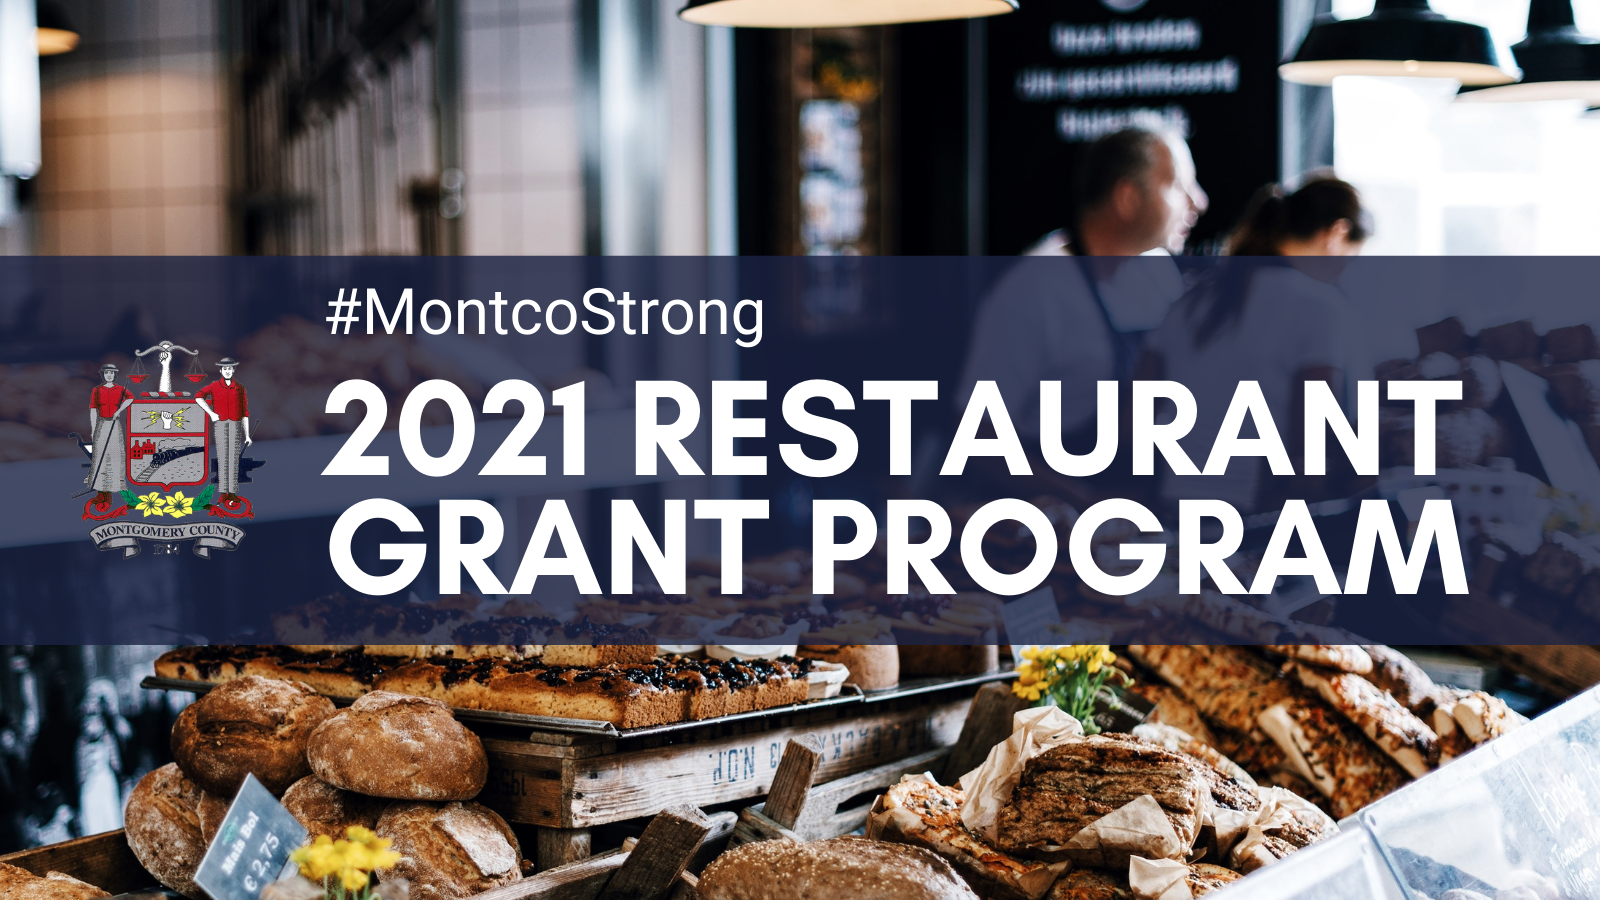 MontcoStrong Restaurant Grant Program Photo